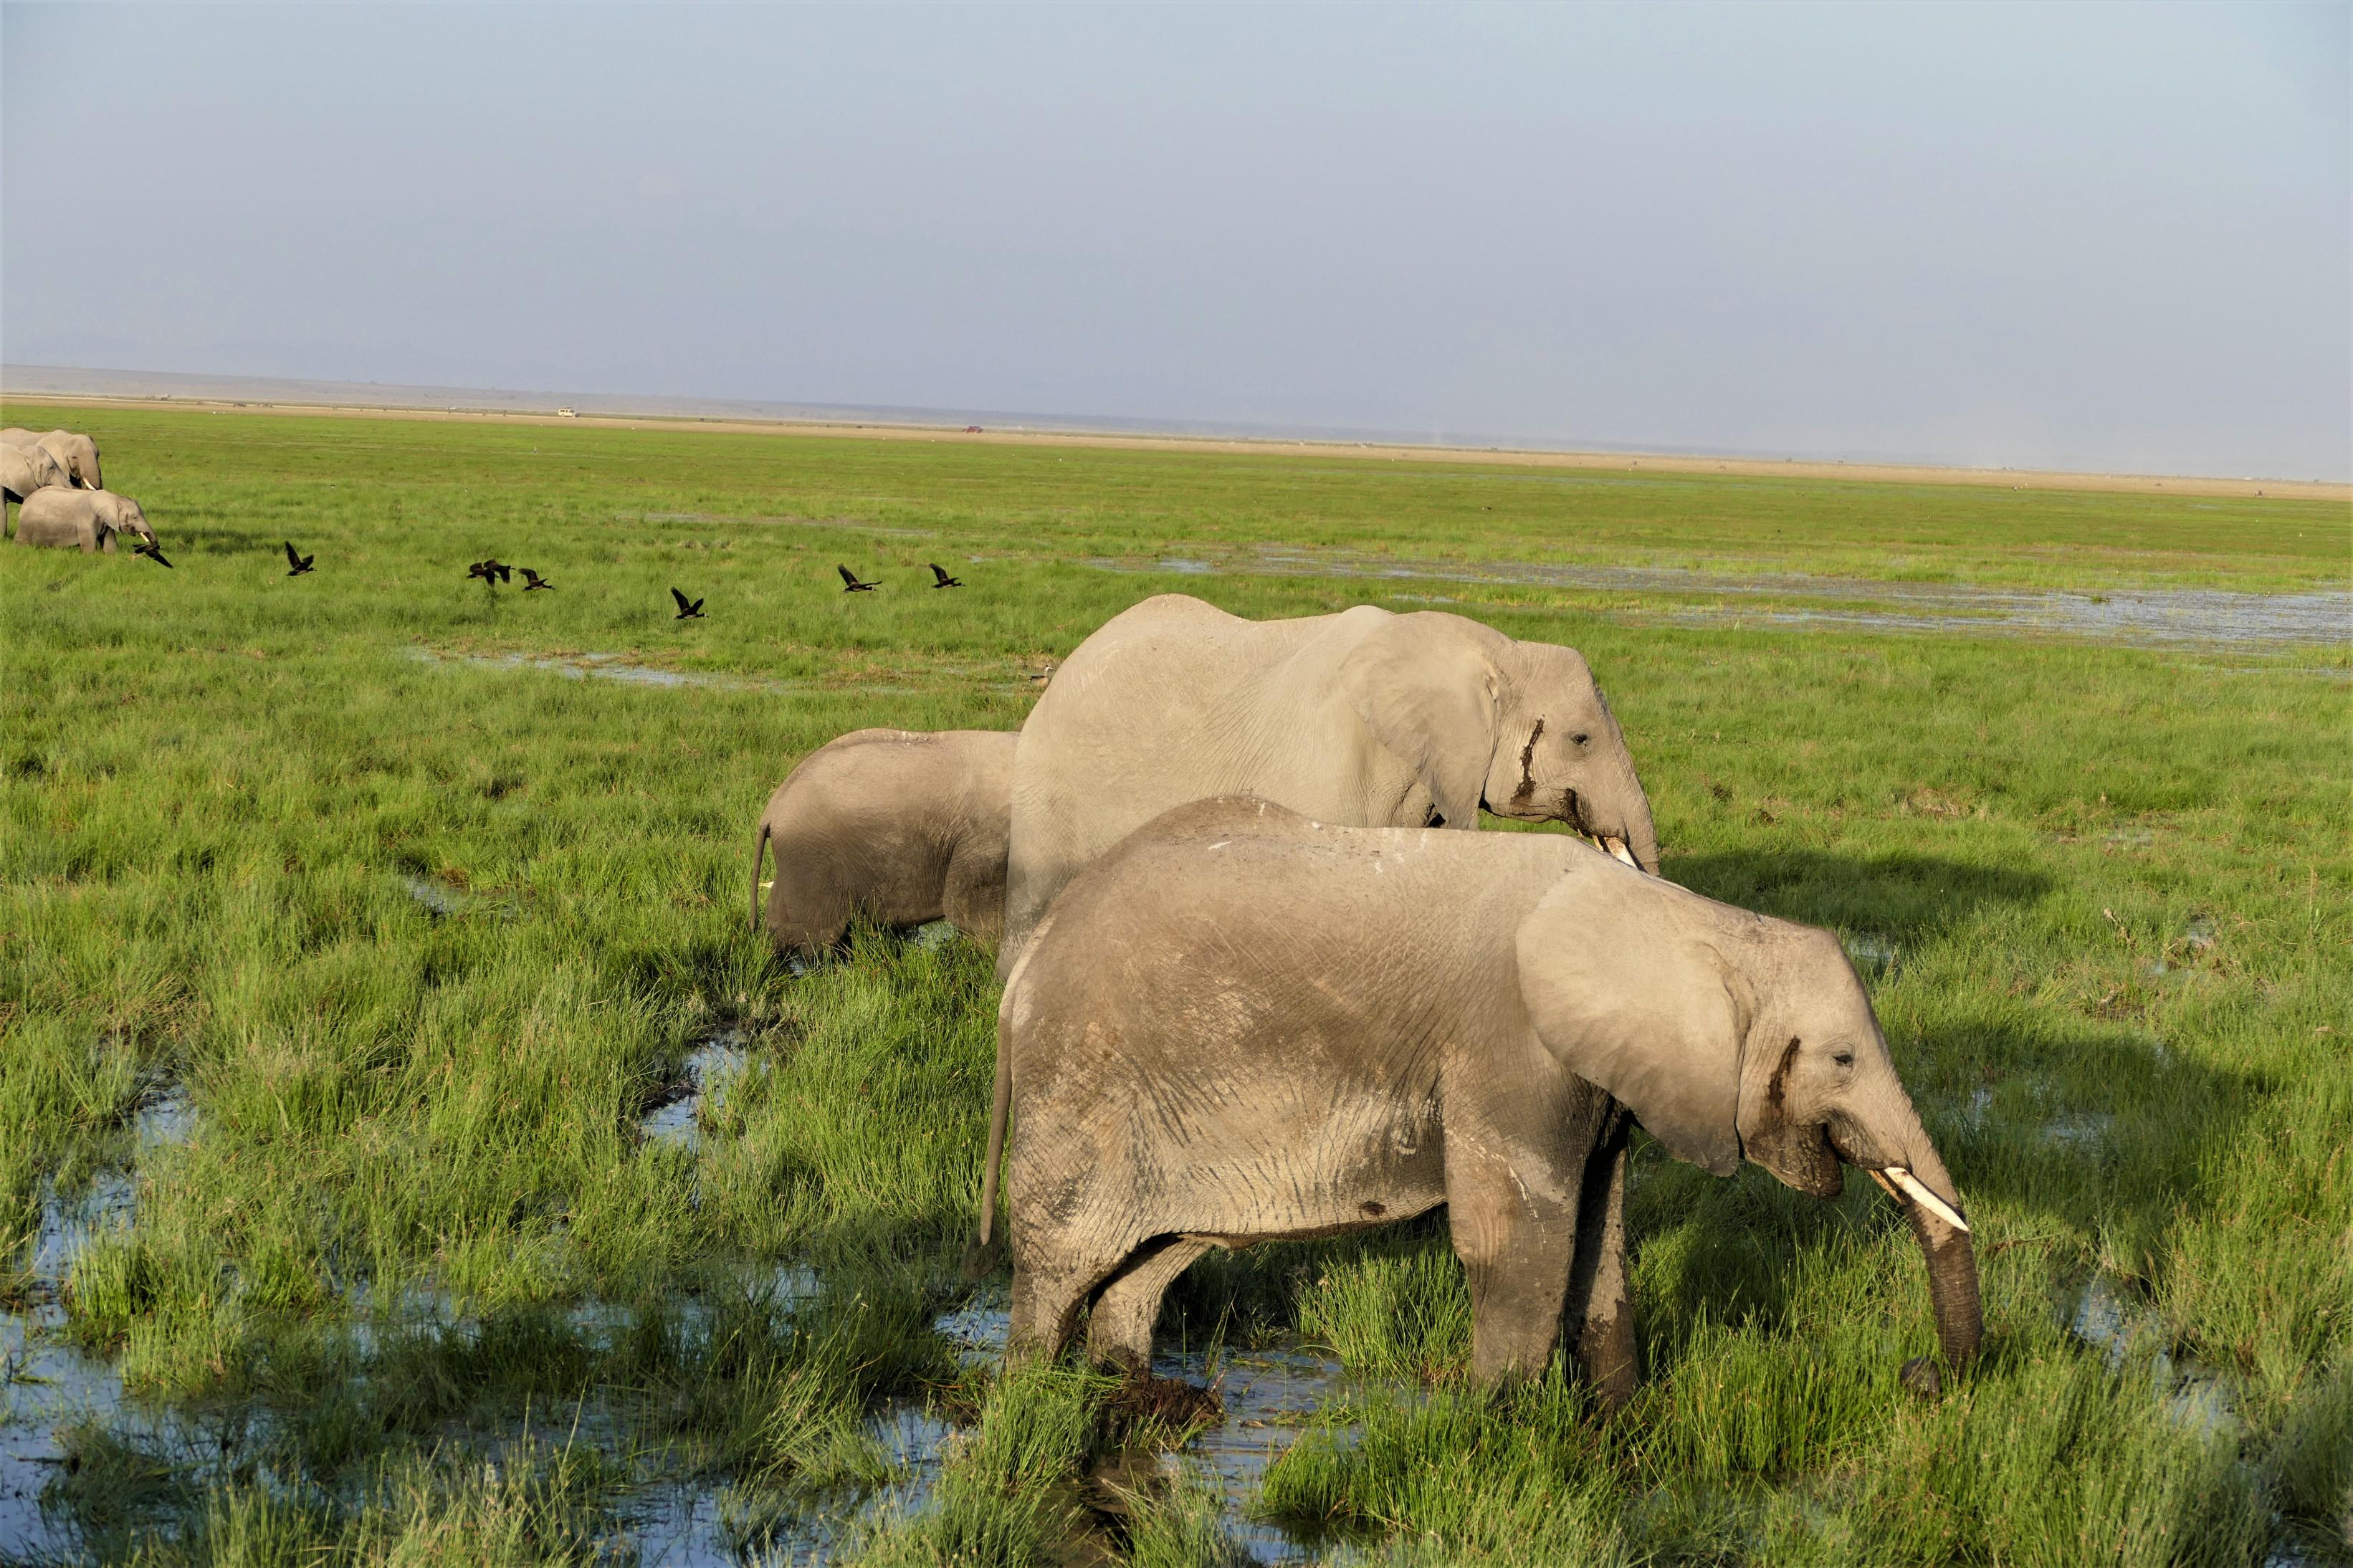 Elephants in the Swamps